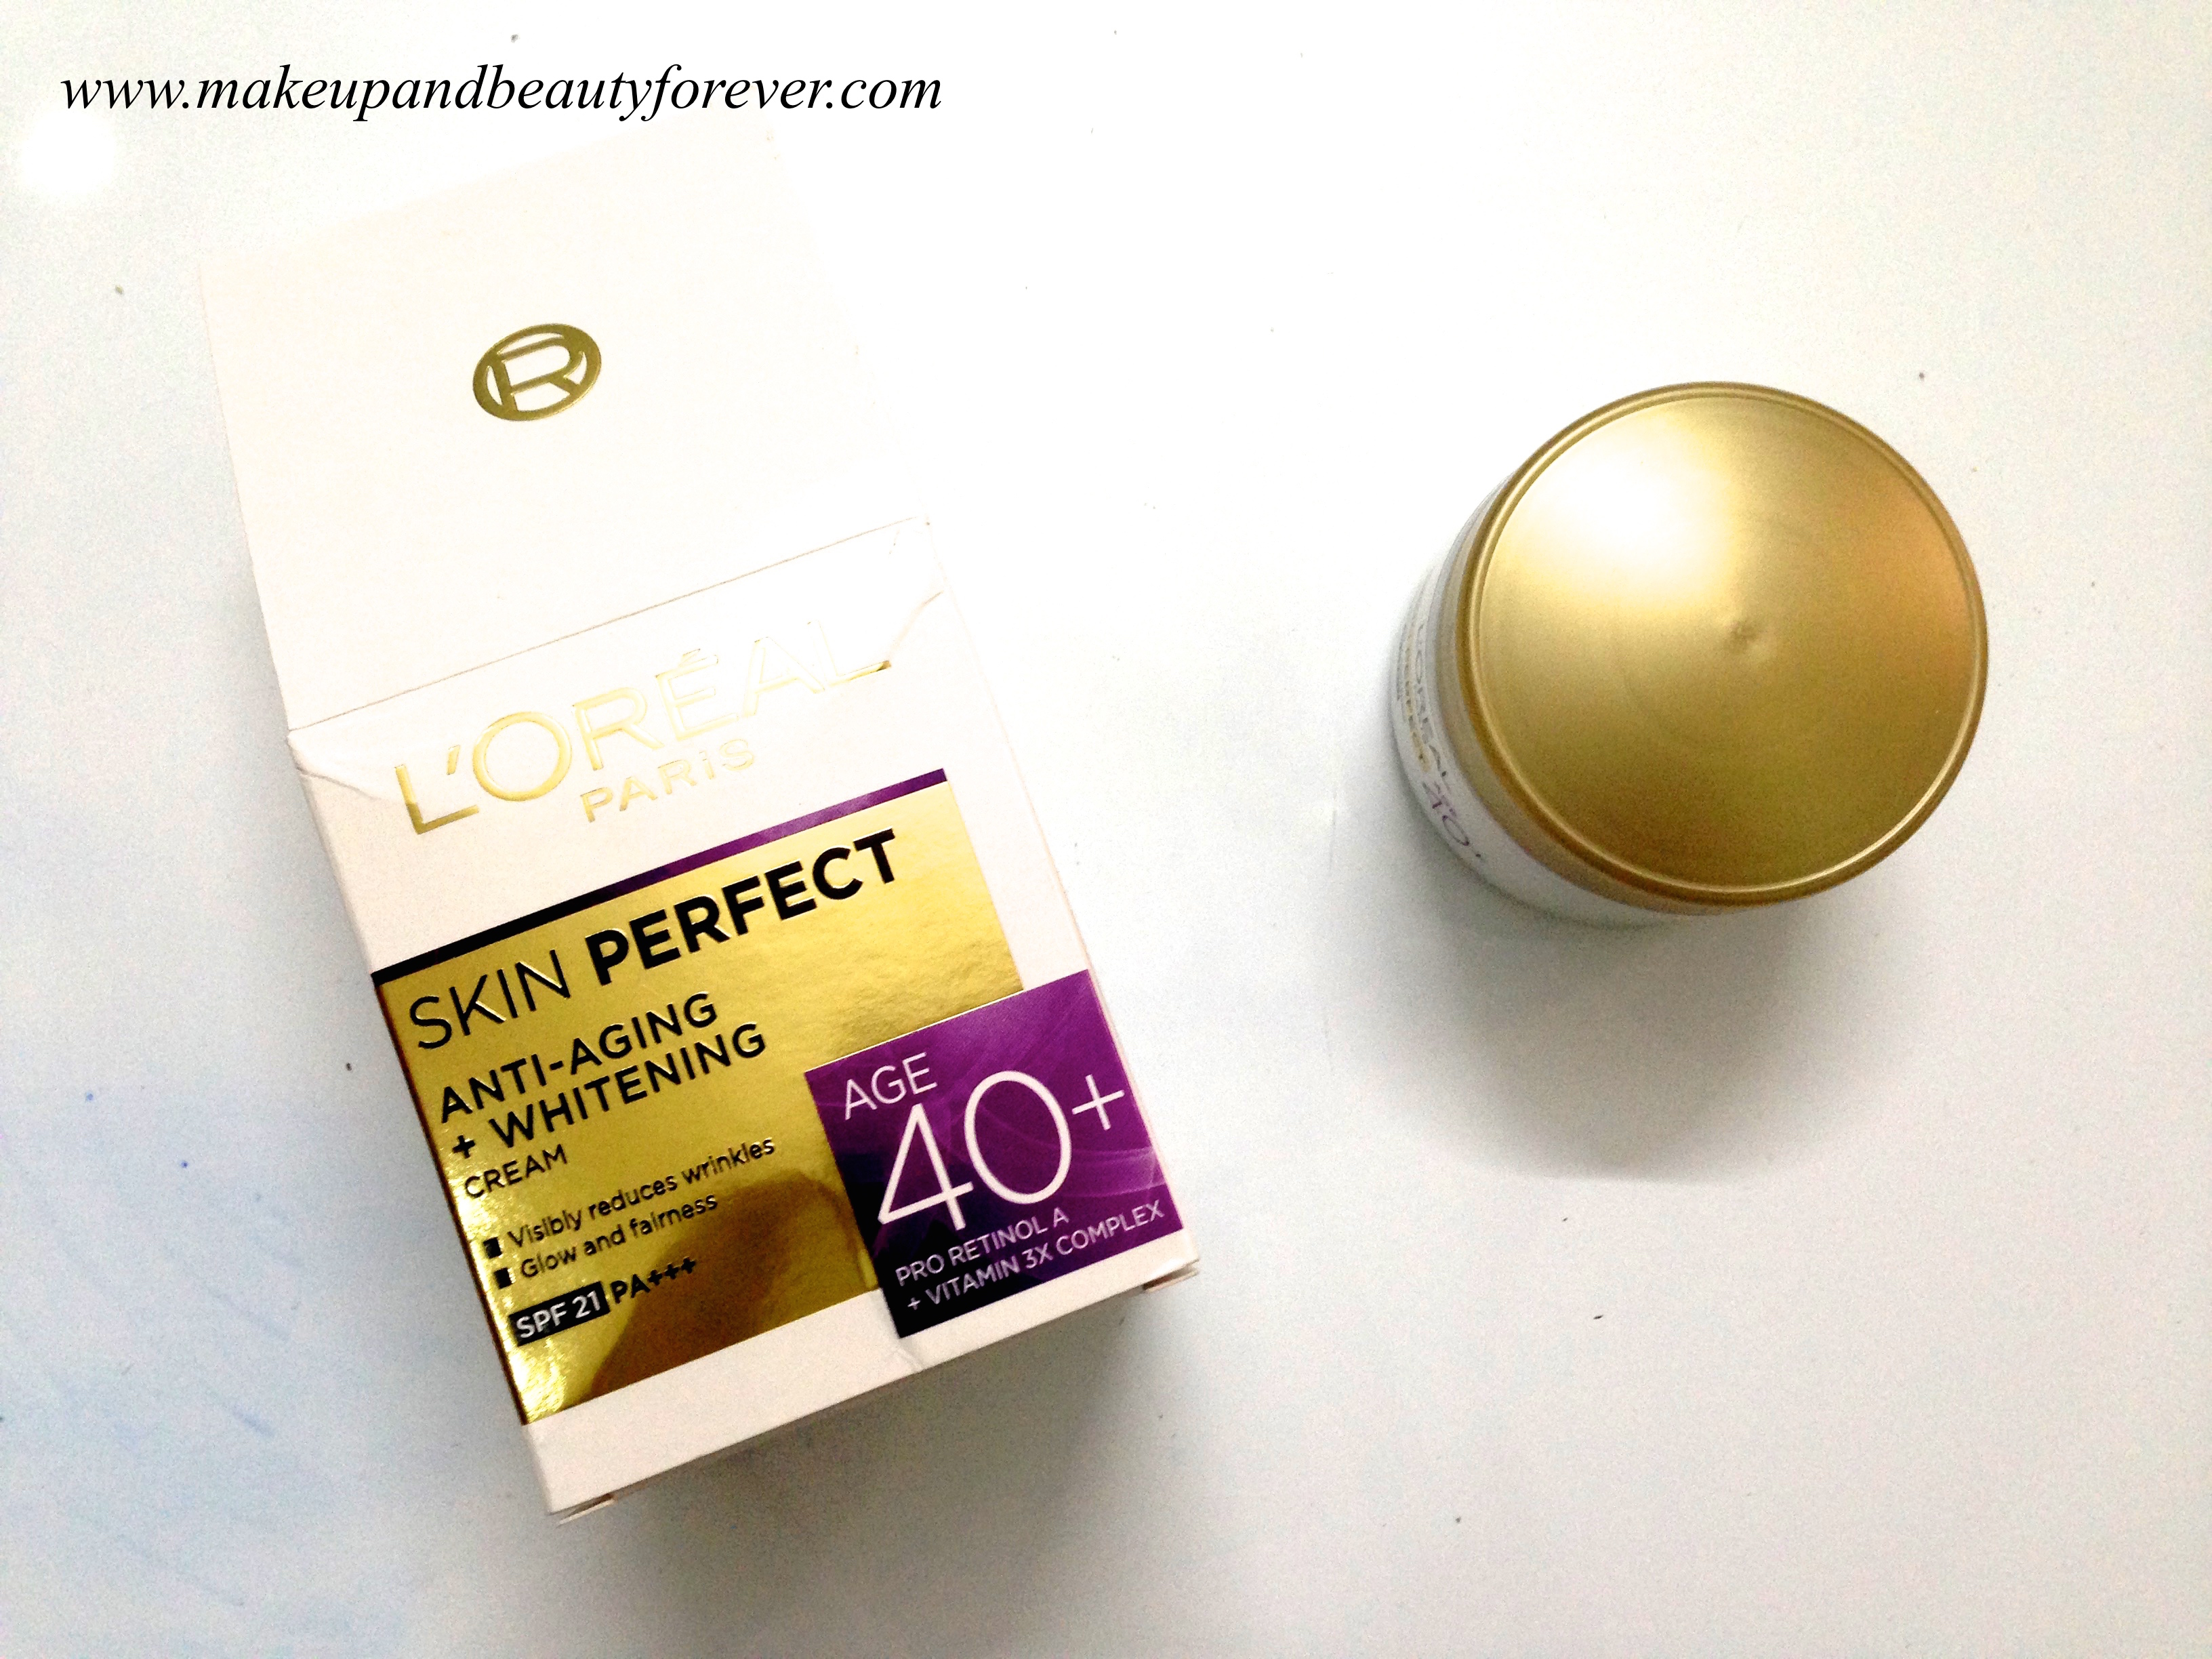 Loreal Paris Skin Perfect Anti Aging Whitening Cream For Age 40 White Day Spf 17 Pa Even Tone Review